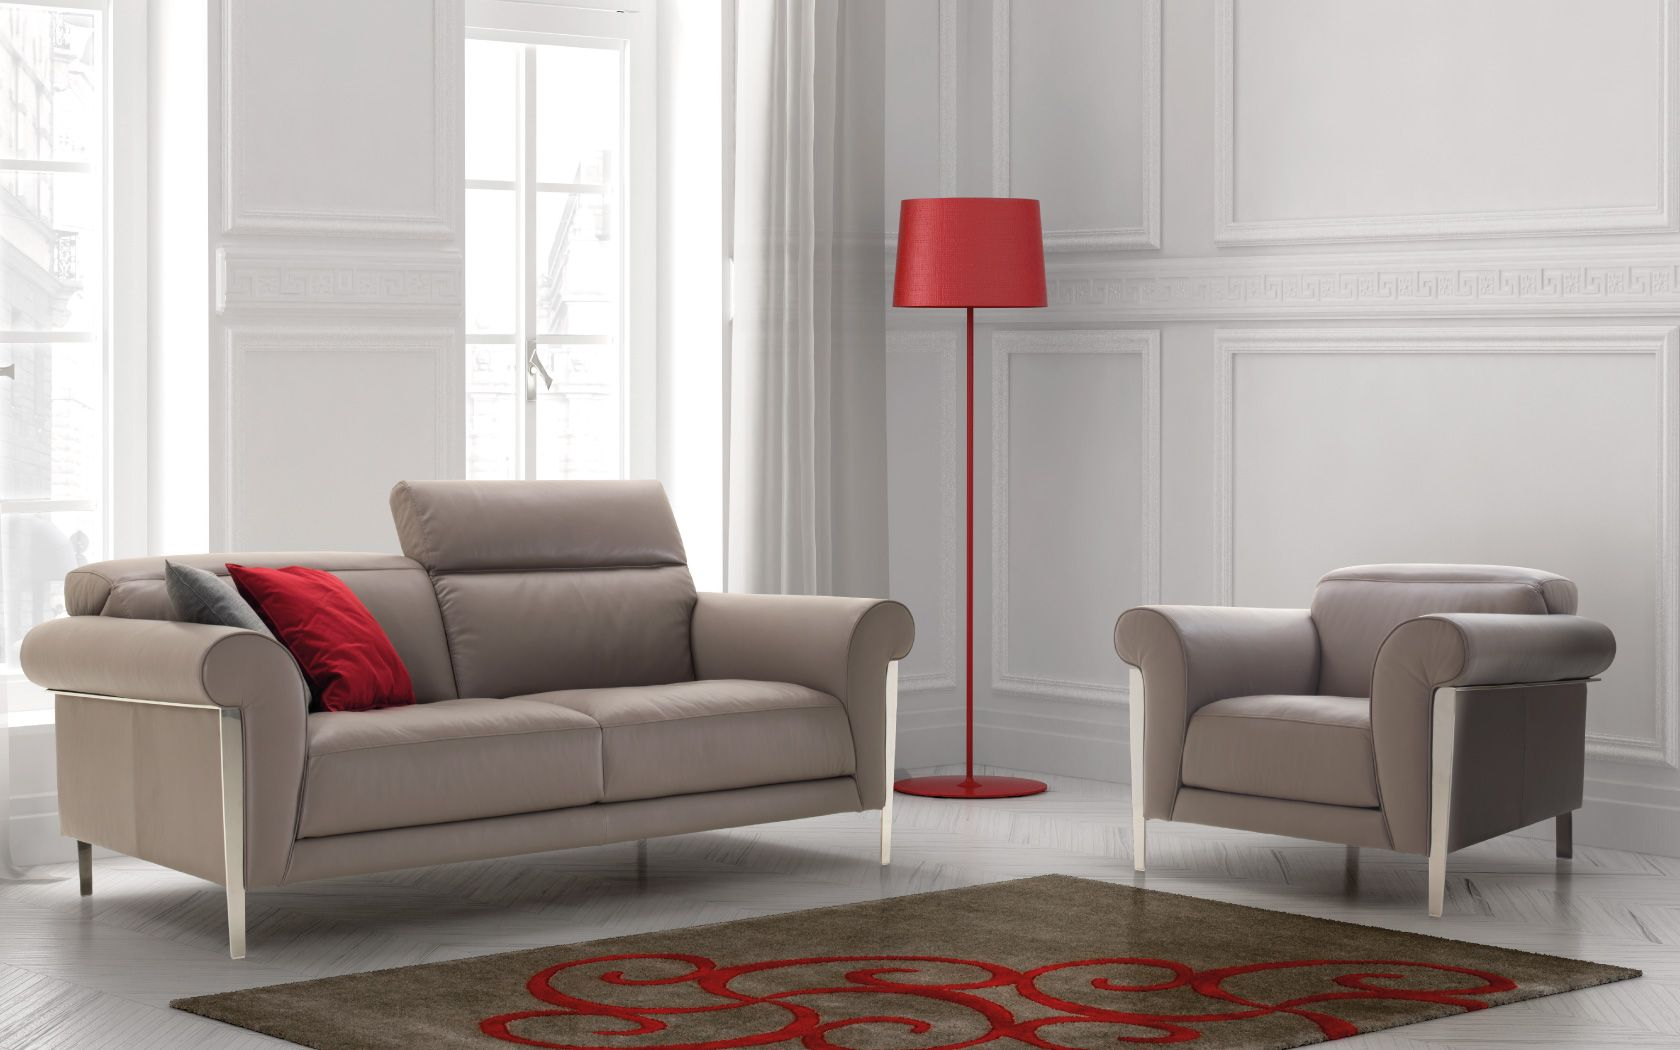 Sofa and chair set perfect for a formal living room